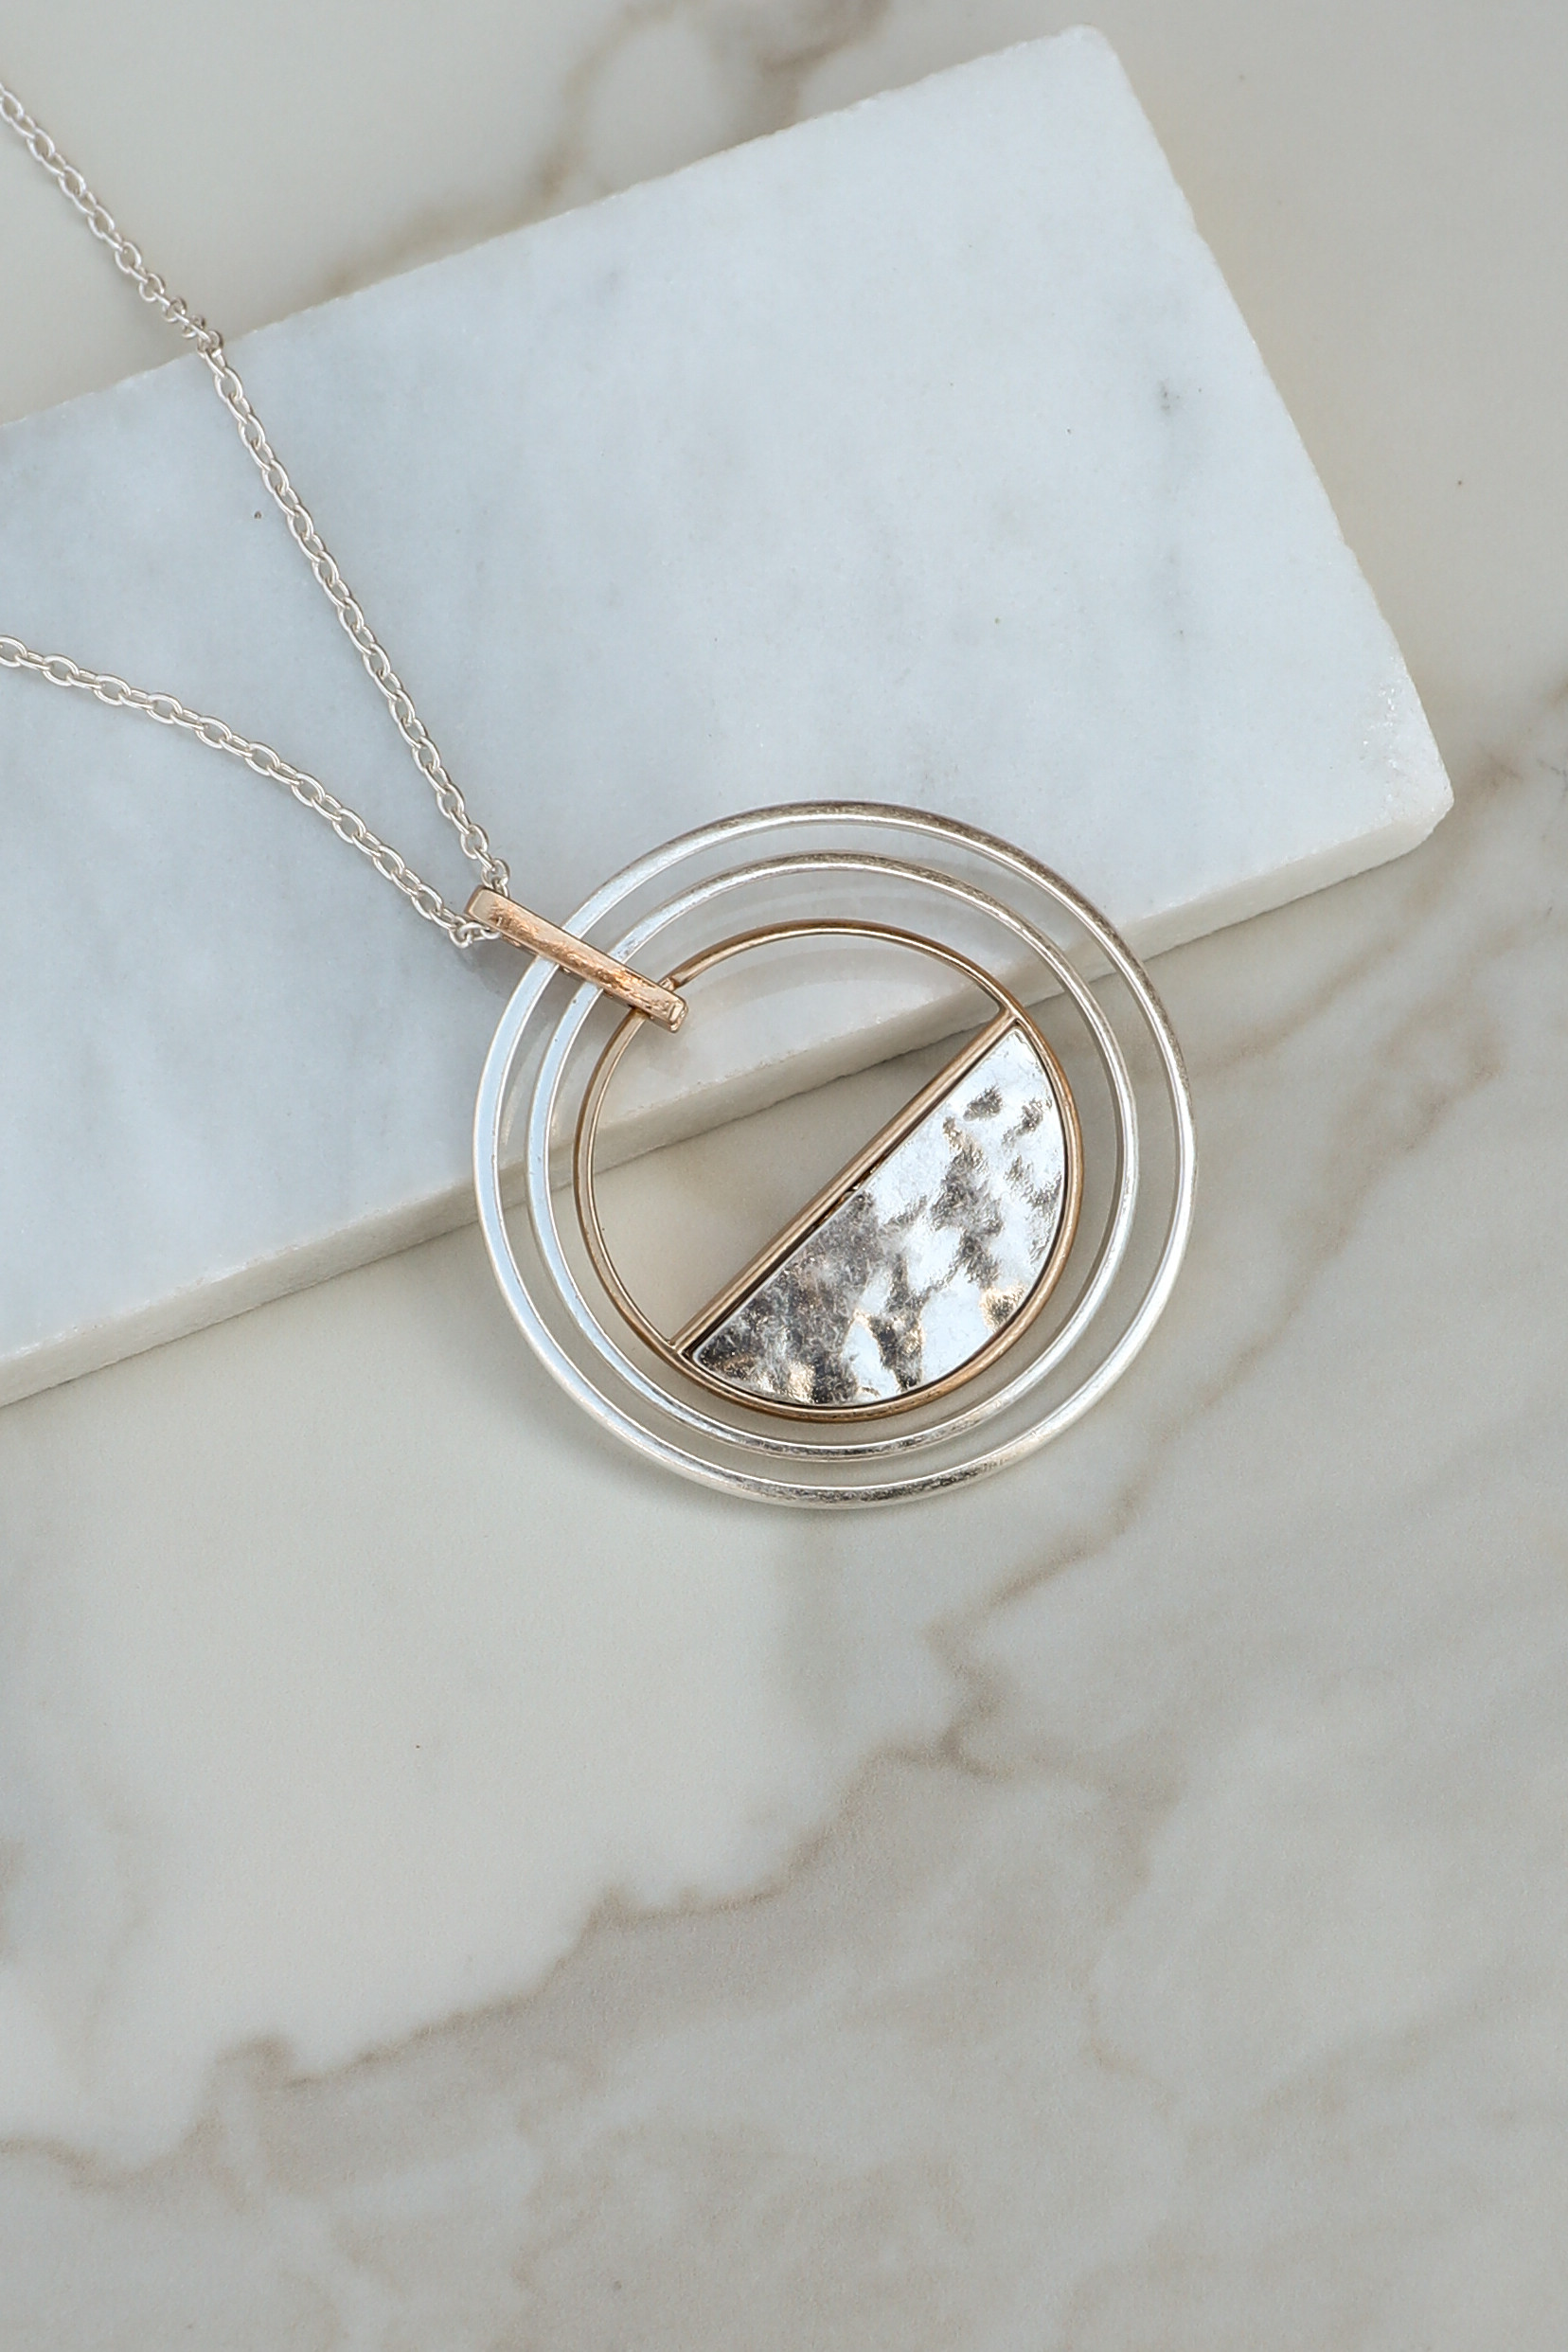 Silver and Gold Long Necklace with Layered Hoop Pendant